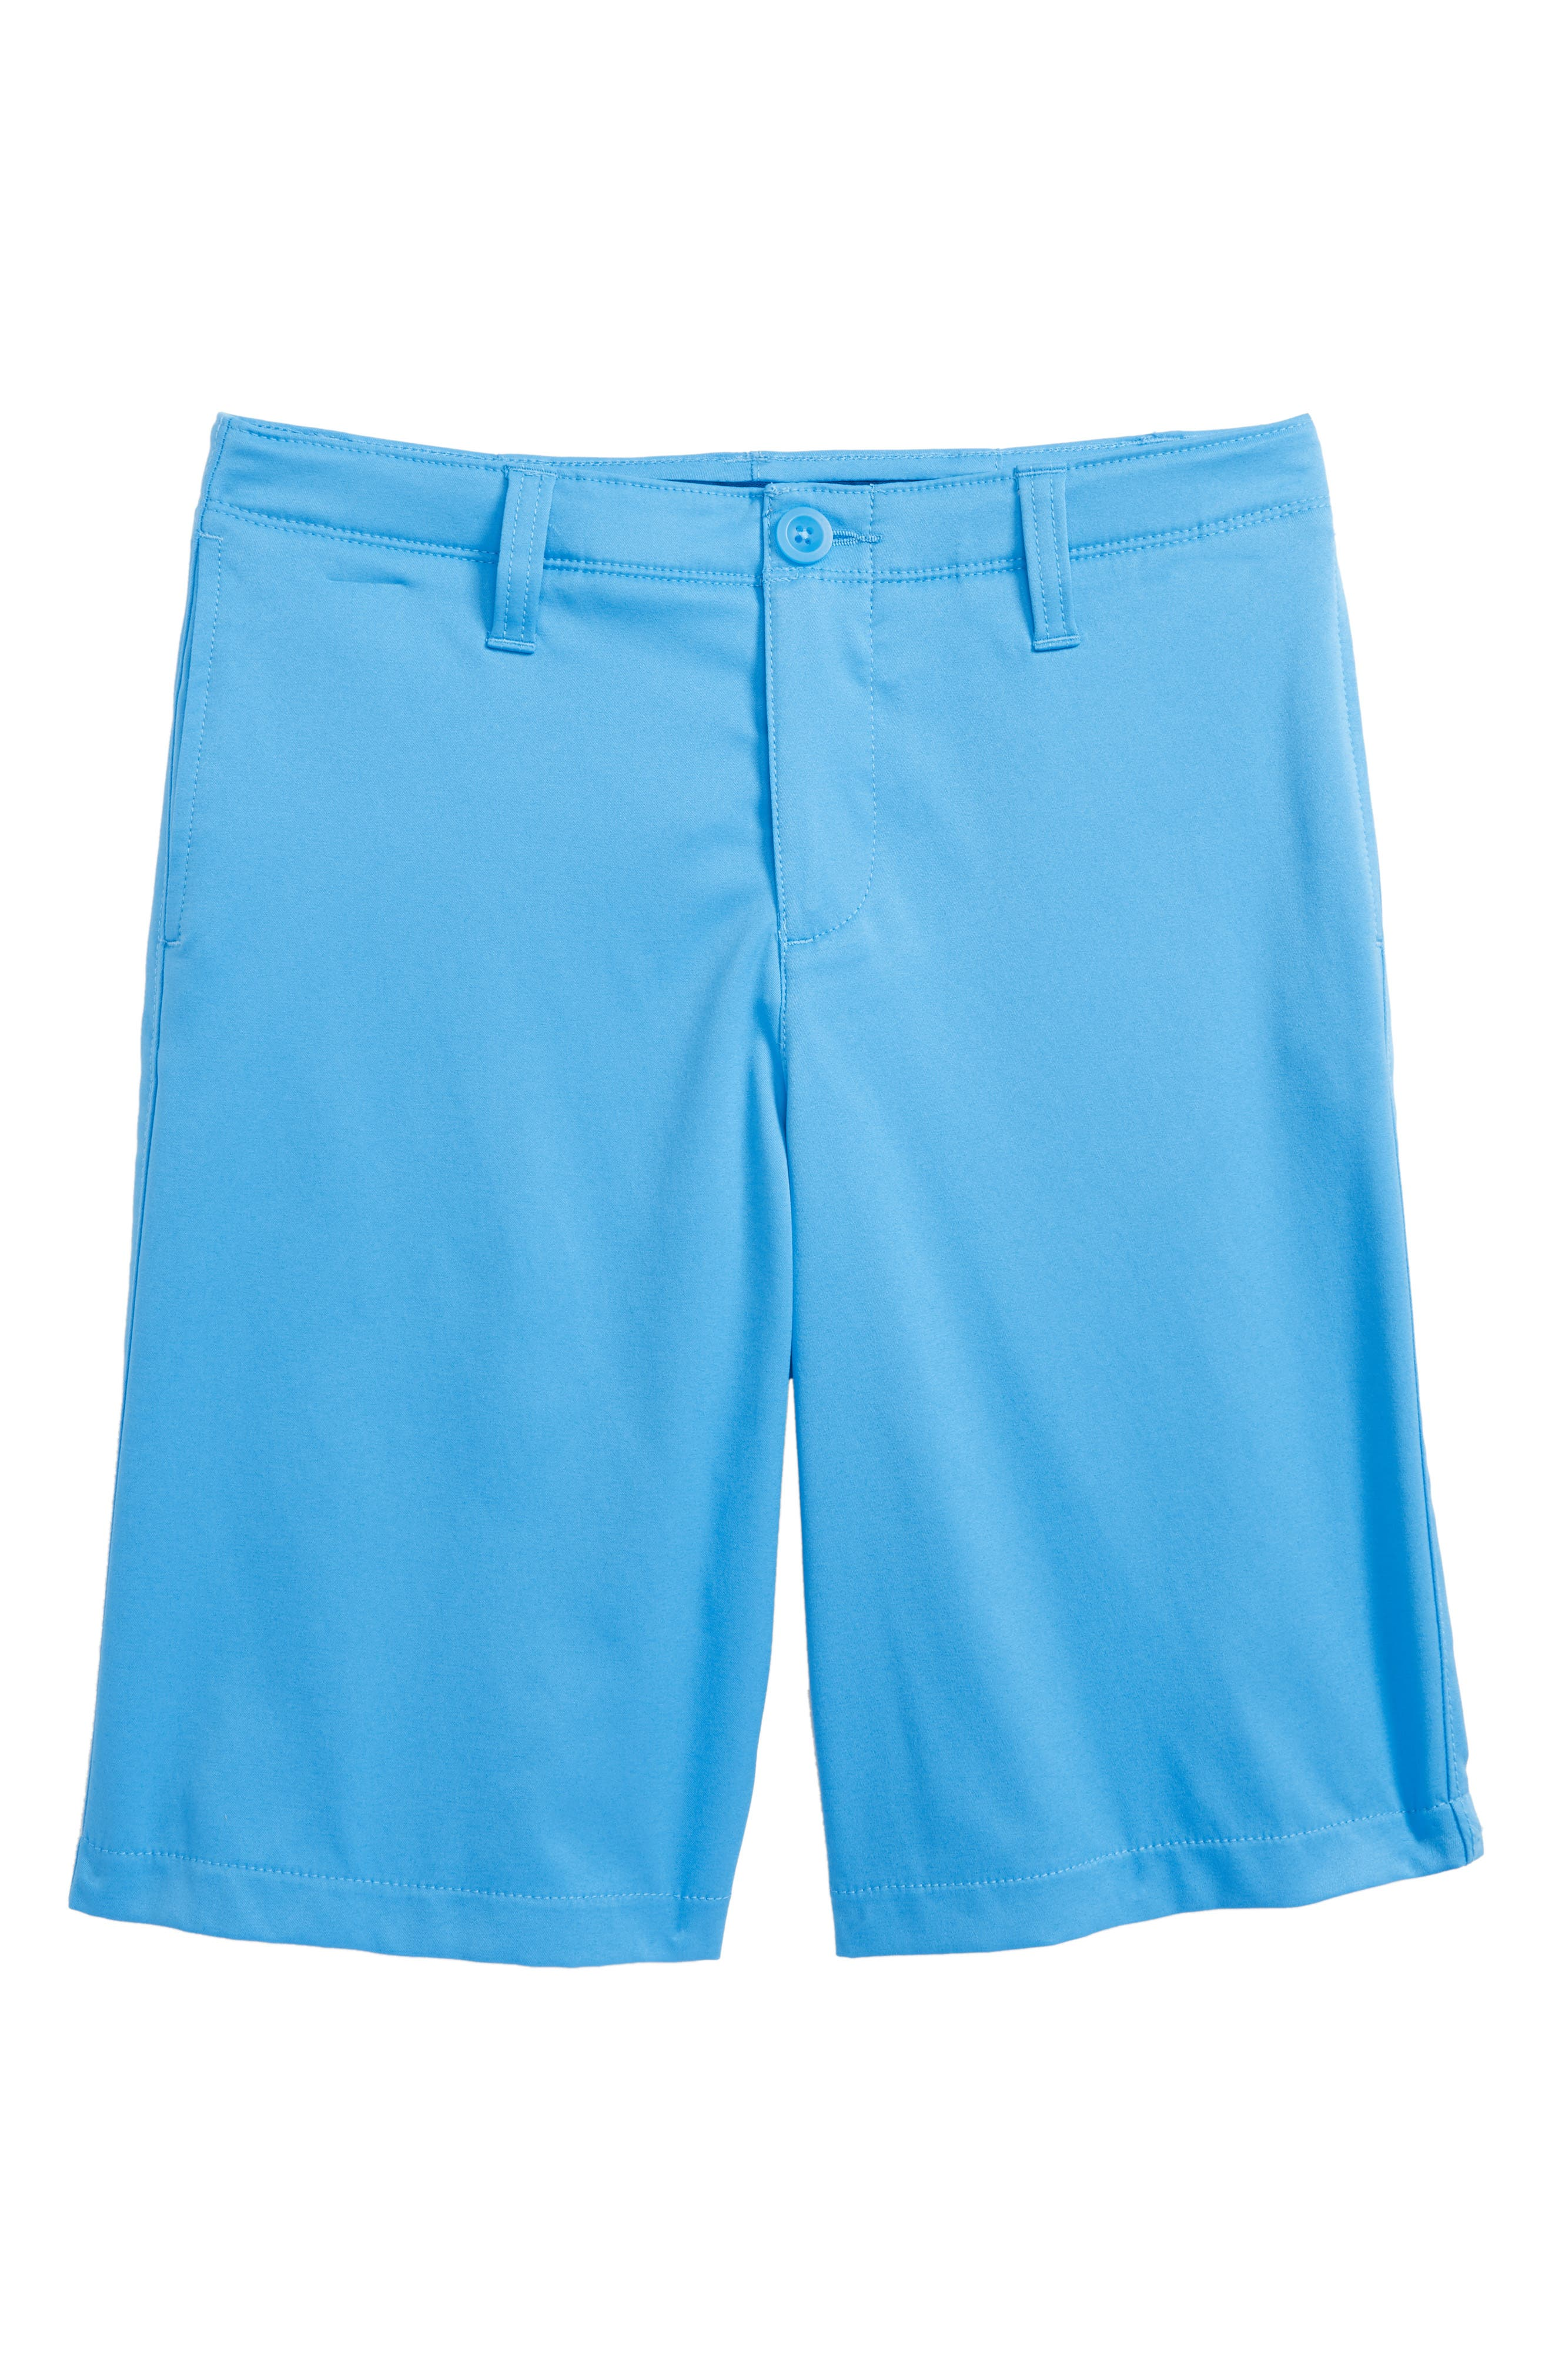 UNDER ARMOUR, Match Play Shorts, Main thumbnail 1, color, 401